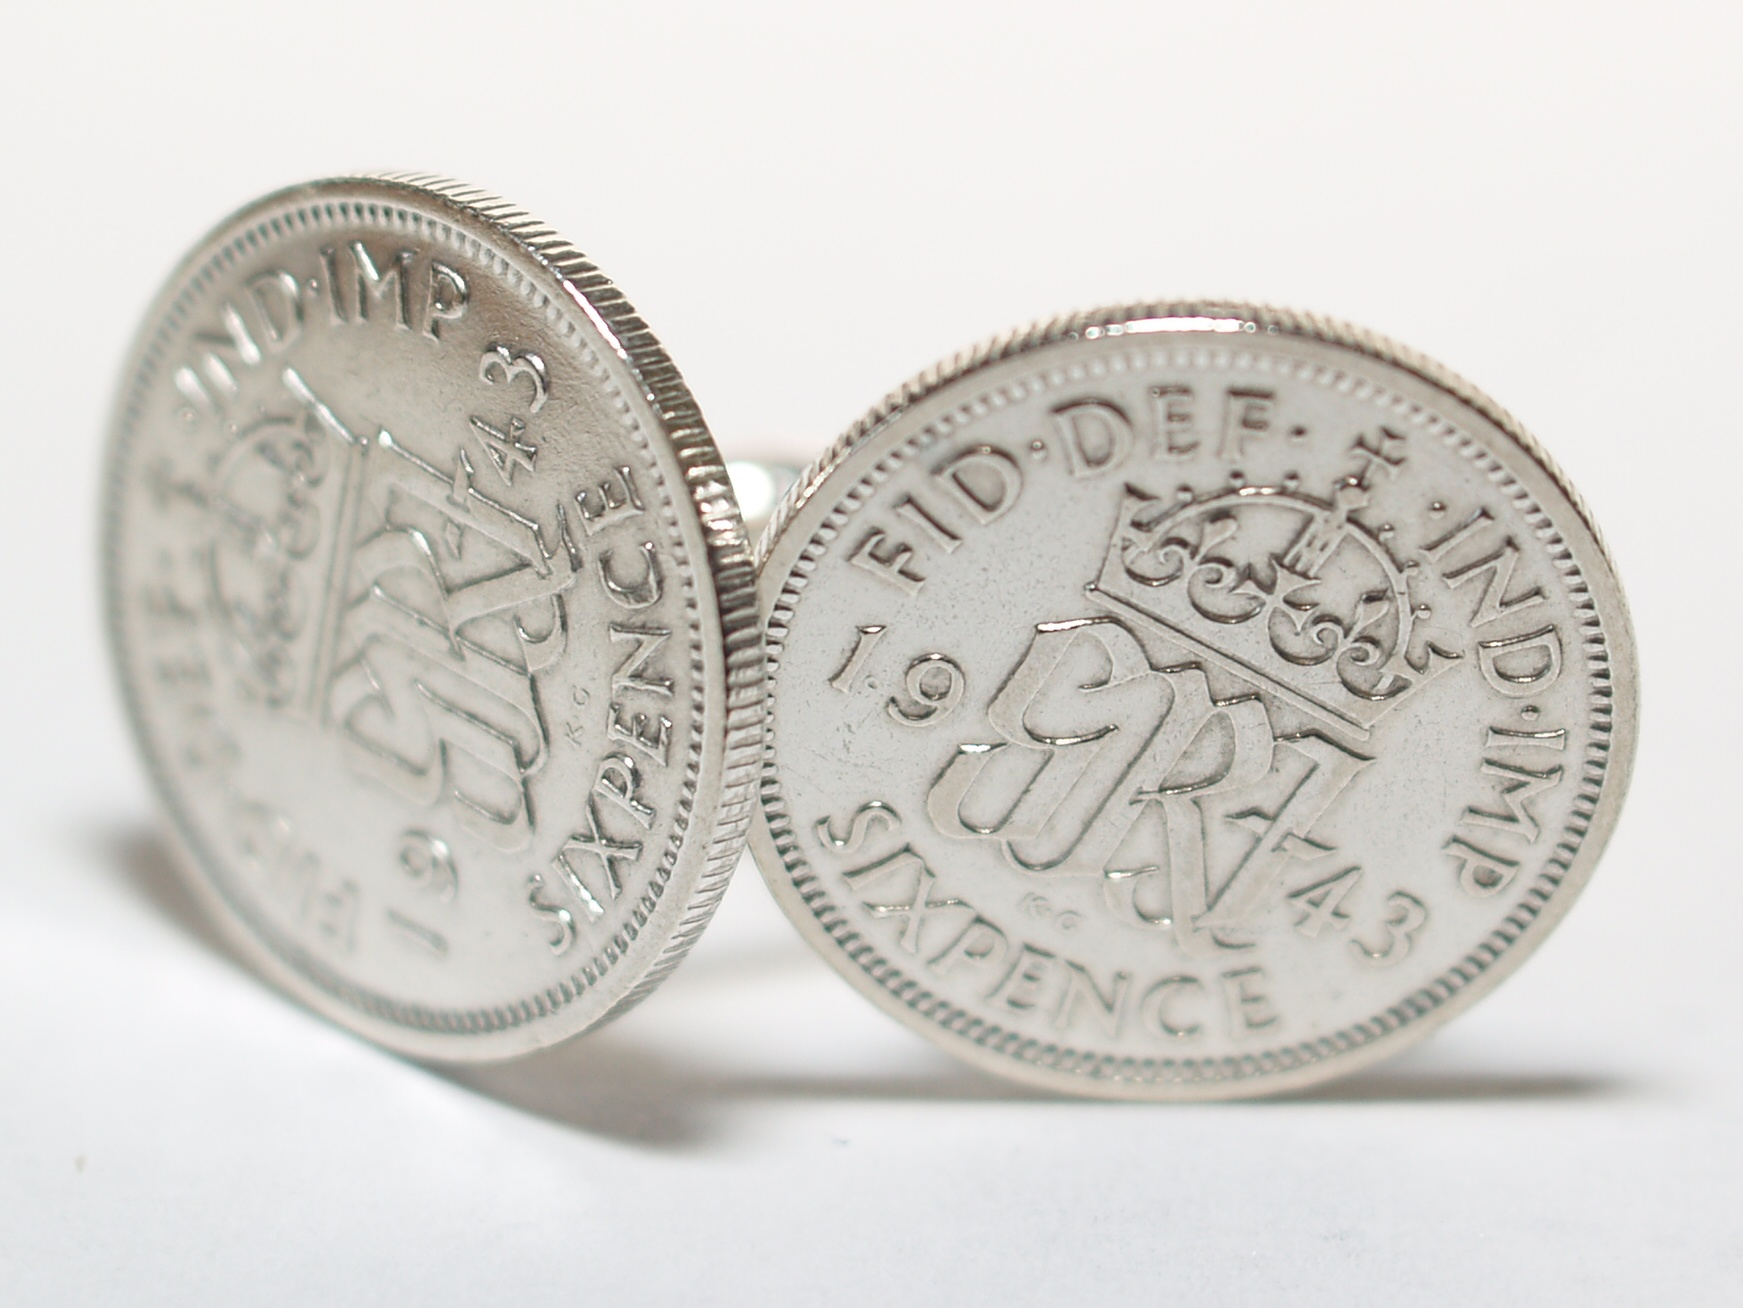 Sixpence for luck 1943 77th Birthday Cufflinks - WOW great gift - Cufflink box